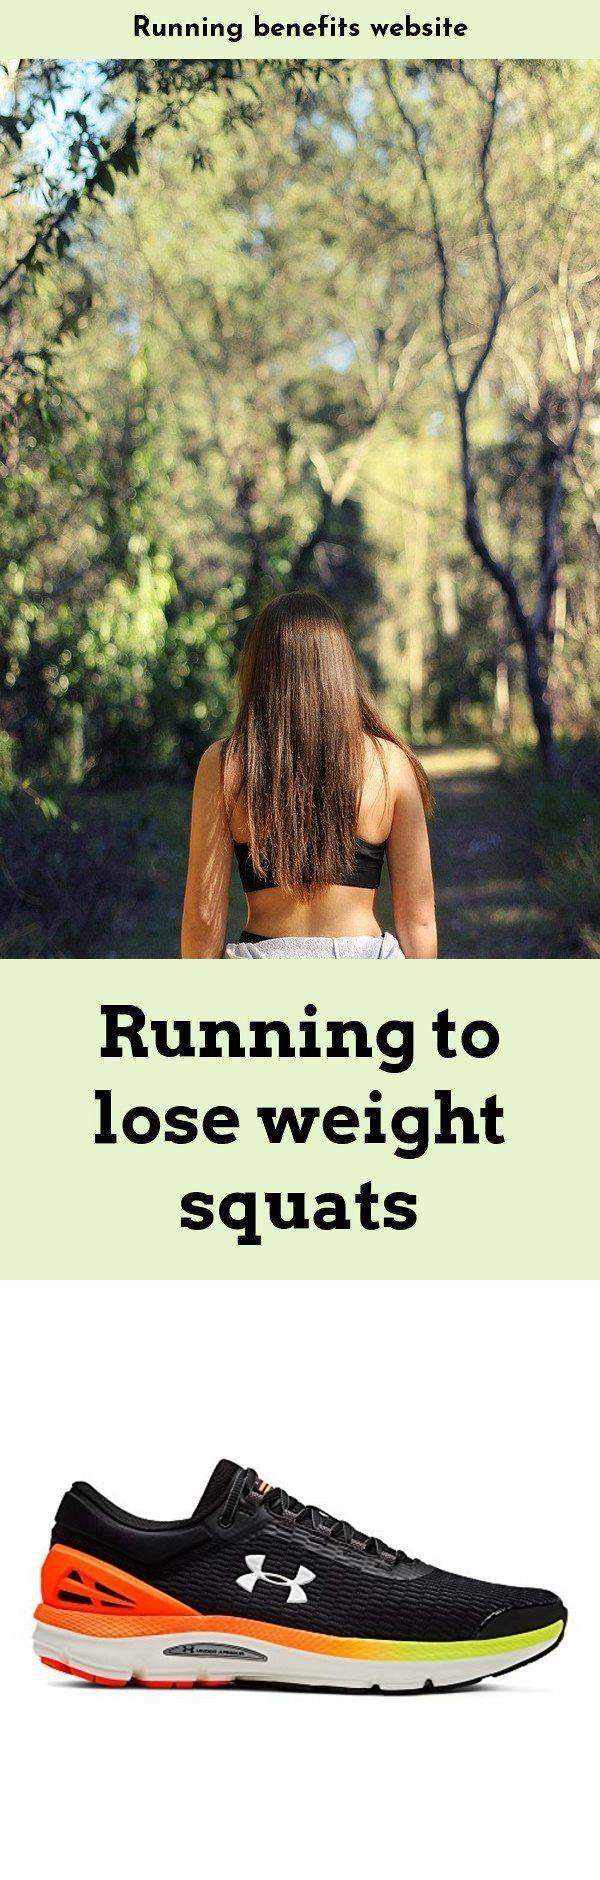 Running to lose weight squats. Running is really so exhausting, yes. But if you ... Running to lose